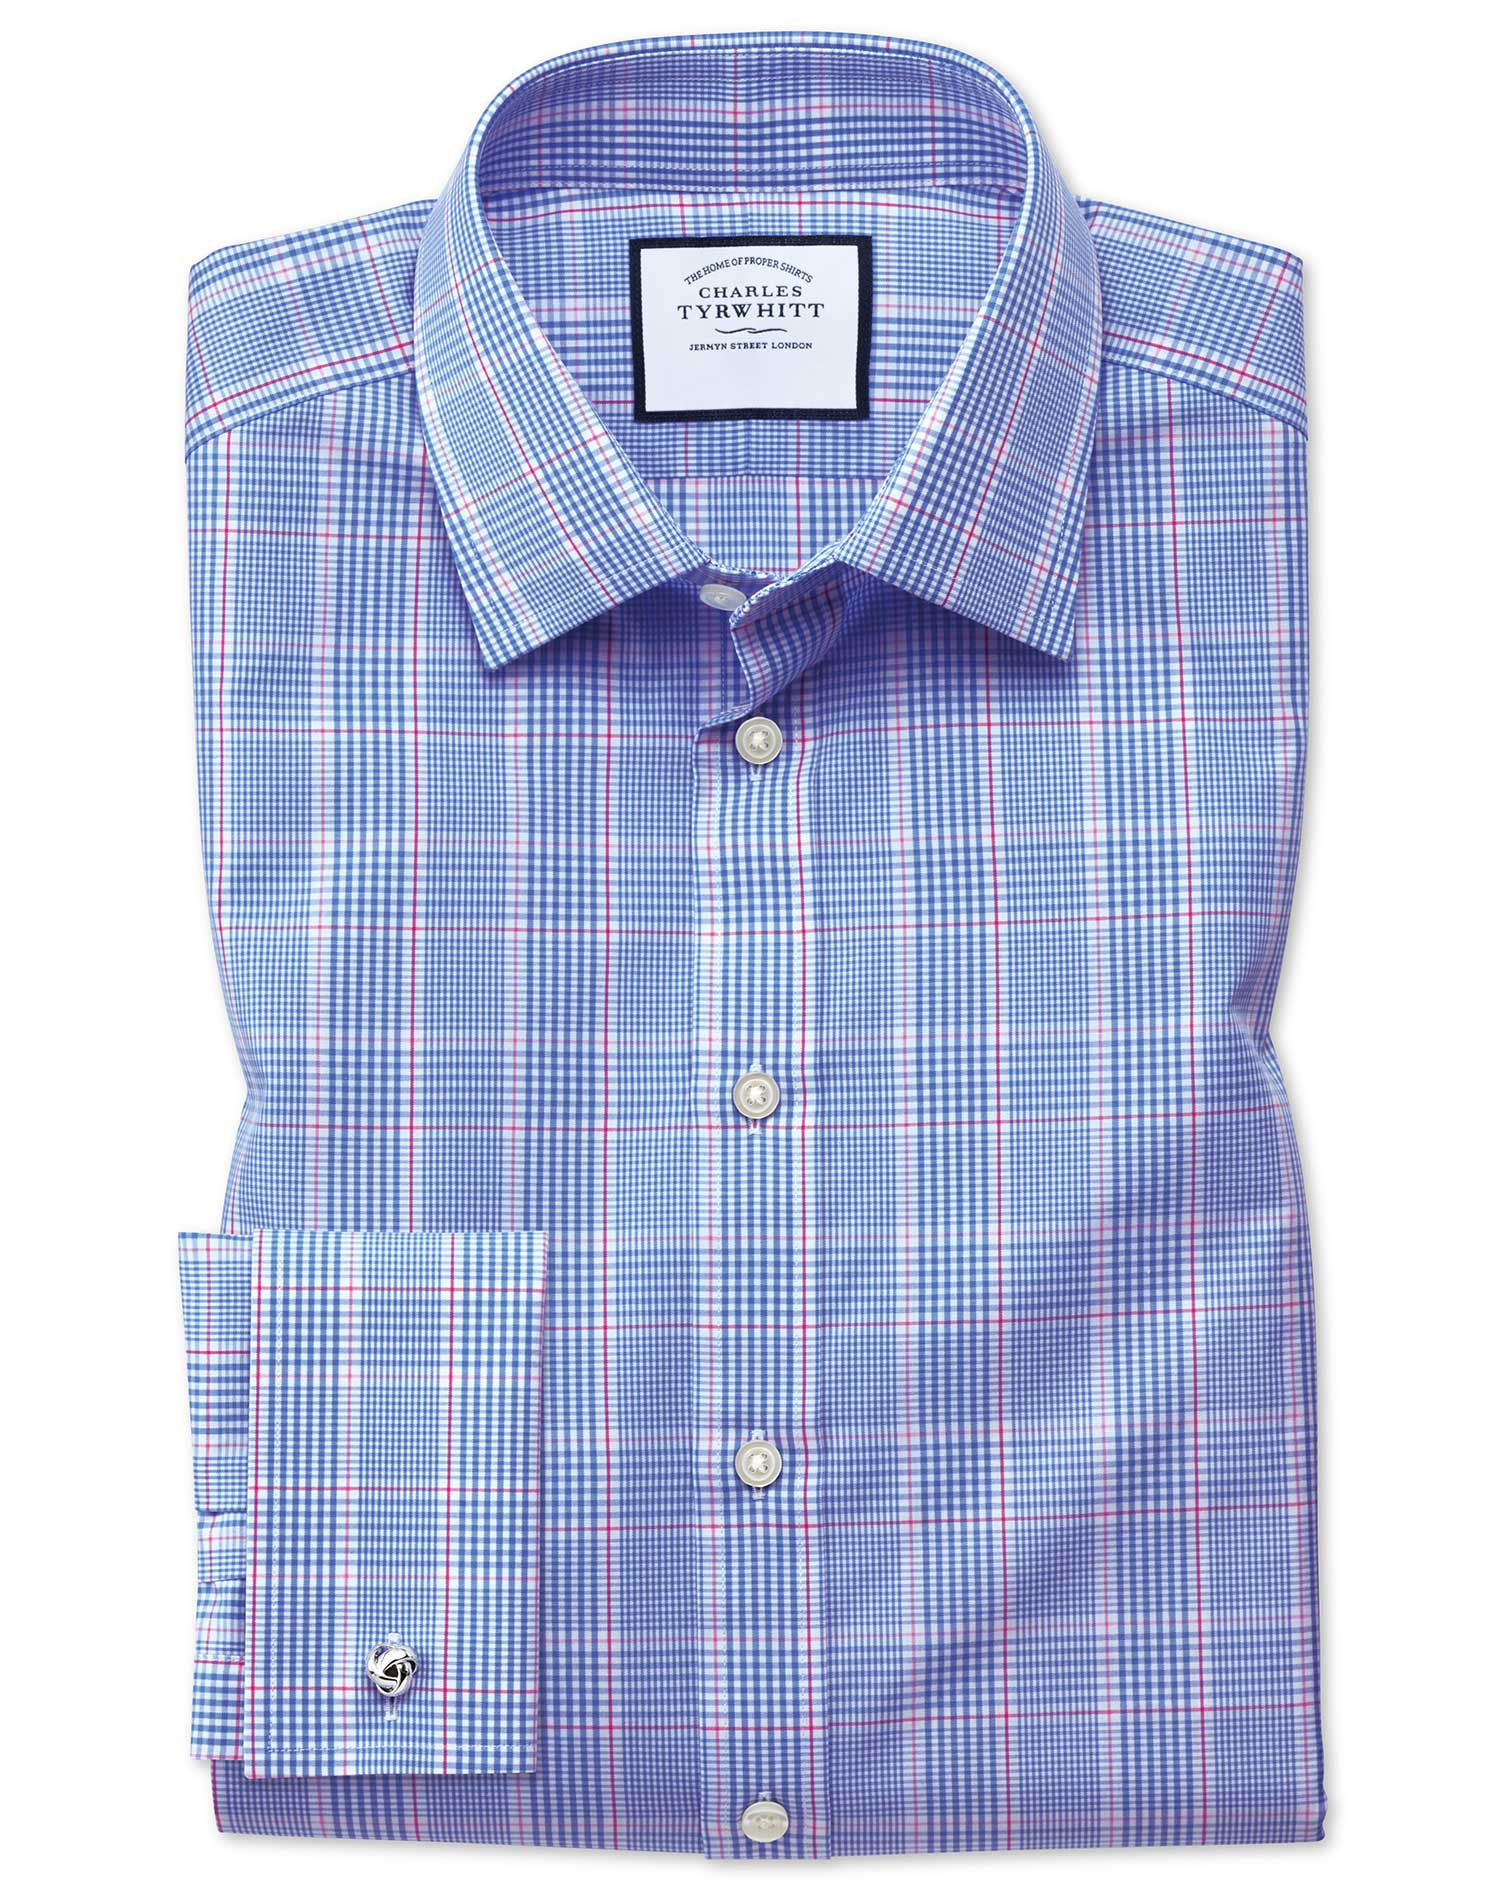 Extra Slim Fit Prince Of Wales Blue Cotton Formal Shirt Double Cuff Size 16/36 by Charles Tyrwhitt